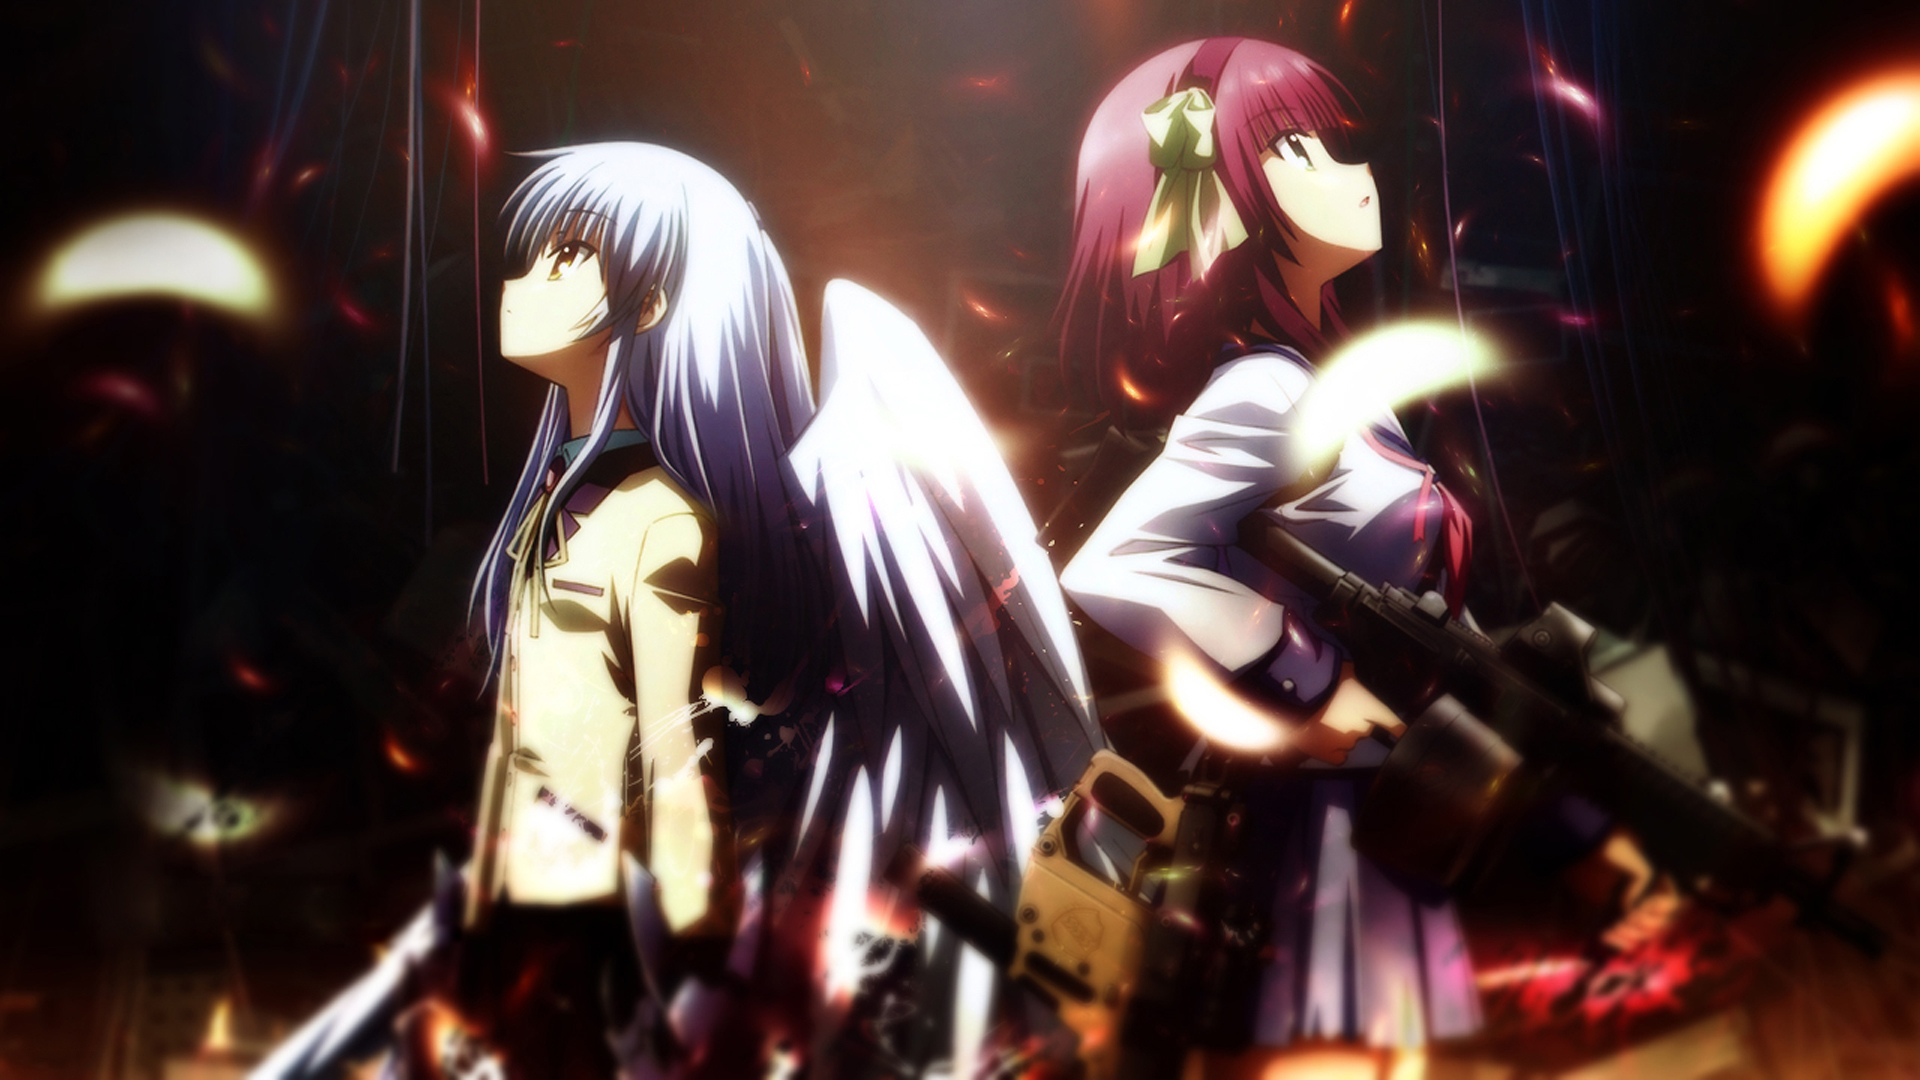 Angel Beats Anime Wallpaper Site 1920x1080